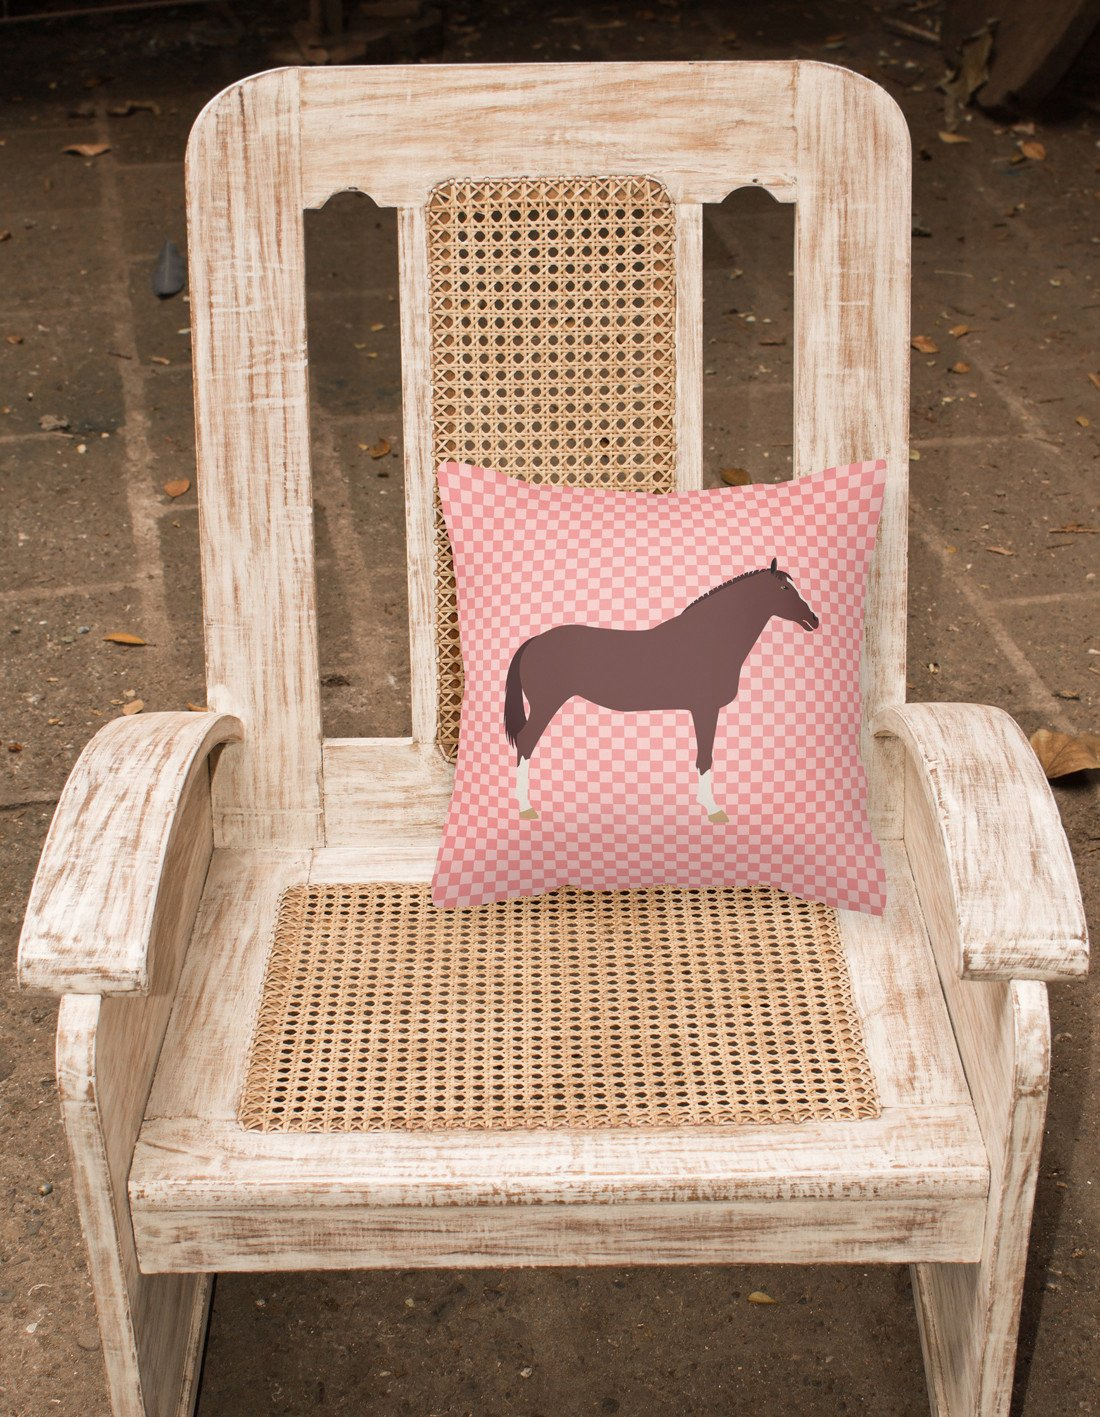 English Thoroughbred Horse Pink Check Fabric Decorative Pillow BB7913PW1818 by Caroline's Treasures